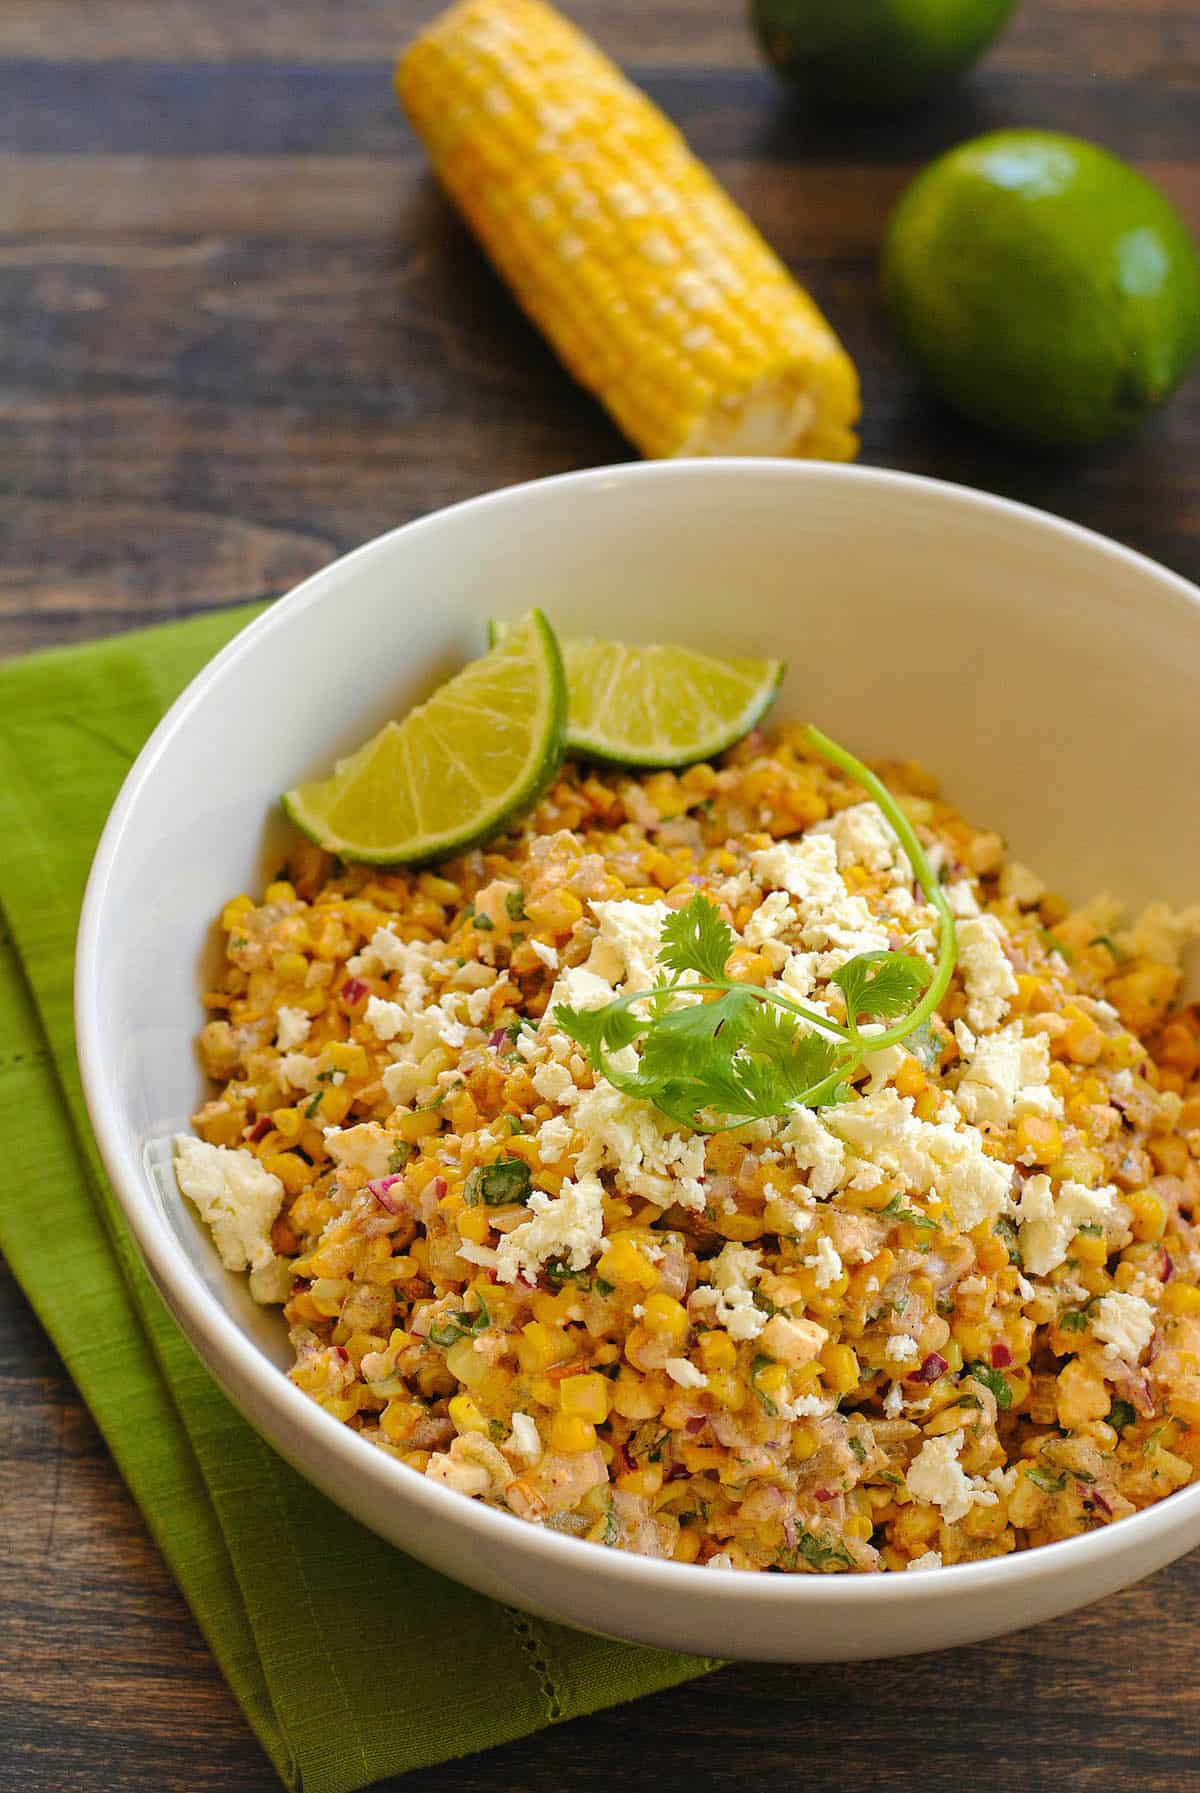 Inspired by Mexican roasted street corn (elote), this Mexican Roasted Corn Salad has a bright and creamy flavor that is always a crowd pleaser. Can be served chilled or at room temperature. | foxeslovelemons.com